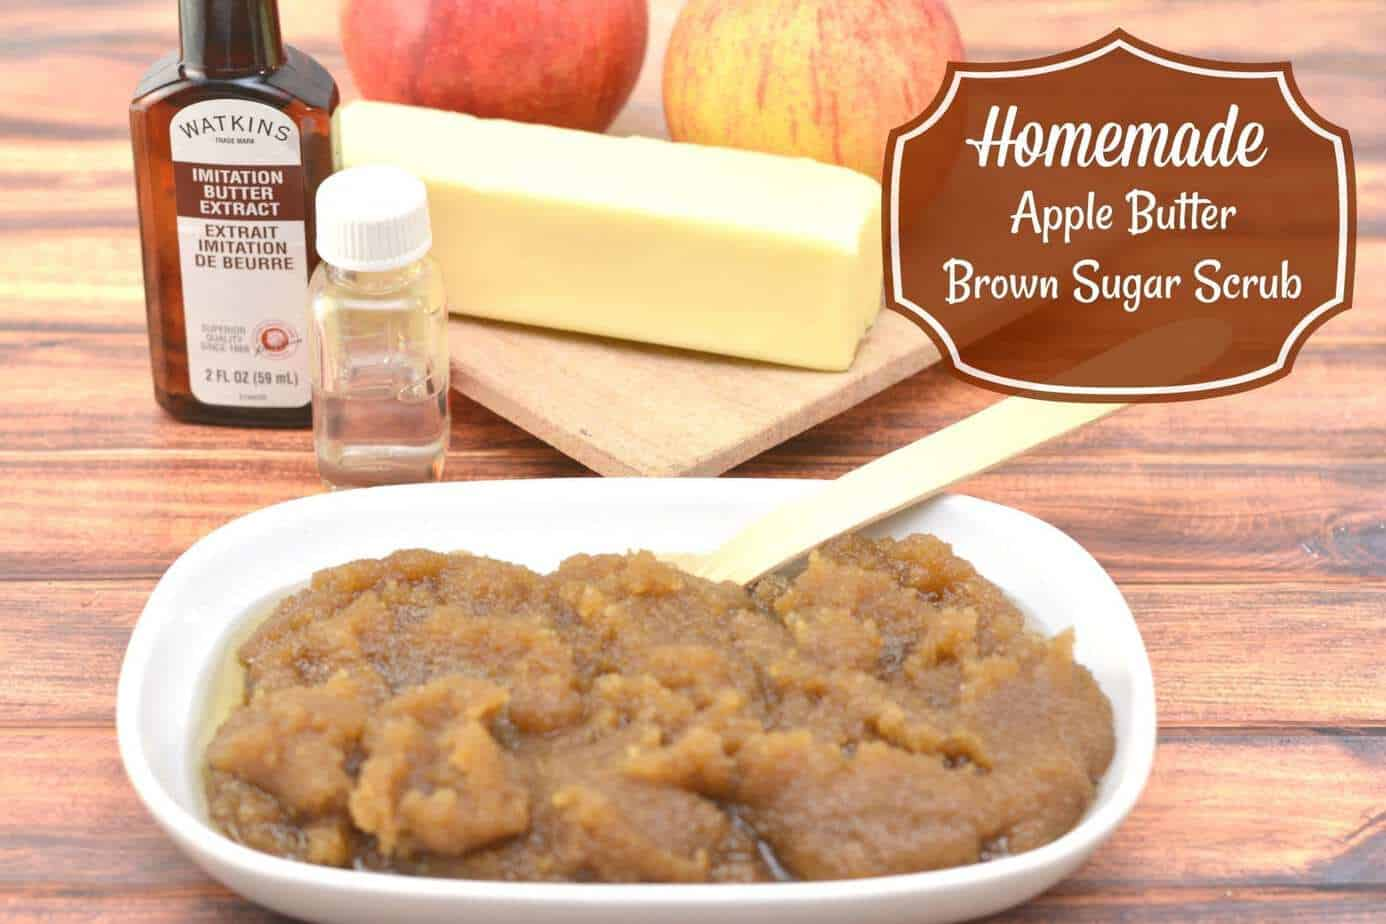 Homemade Apple Butter And Brown Sugar Scrub